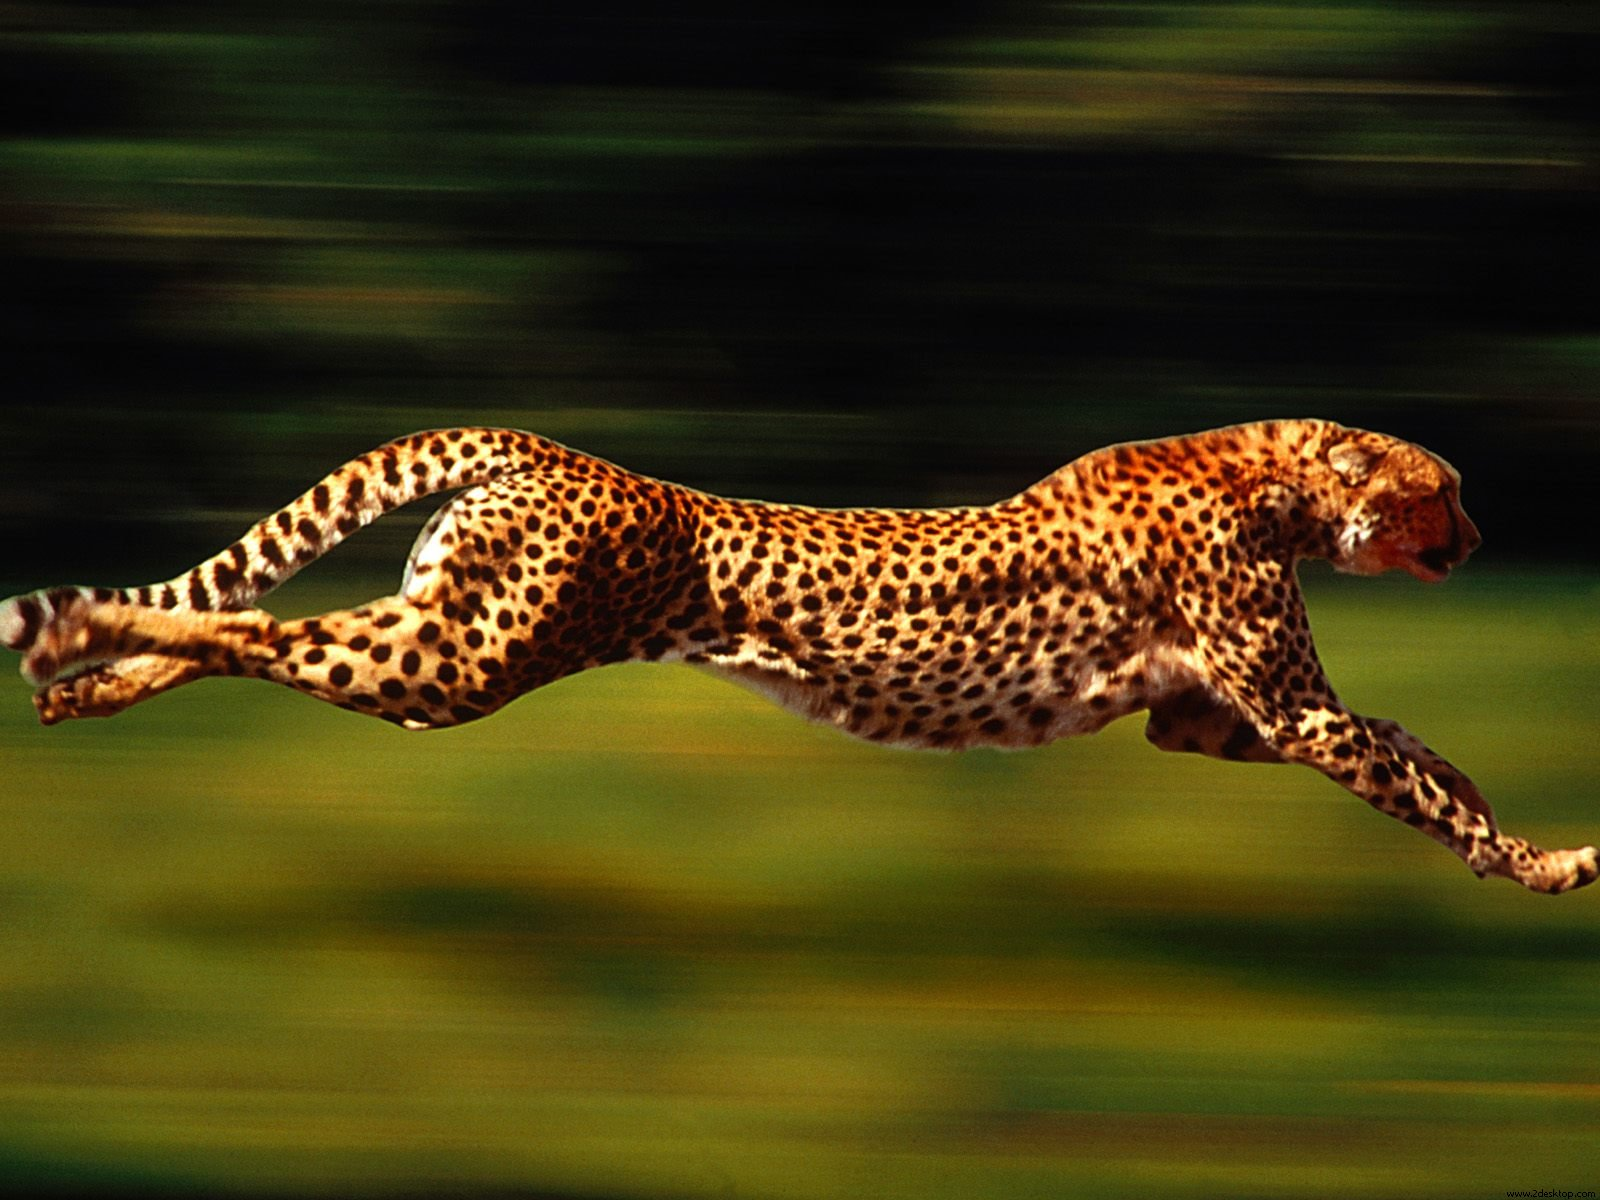 http://3.bp.blogspot.com/_uTGKd6u5pJ4/TQoKYxn_74I/AAAAAAAAAOM/LBWNfF_HOQw/s1600/Running-cheetah-animal-wallpaper.jpg